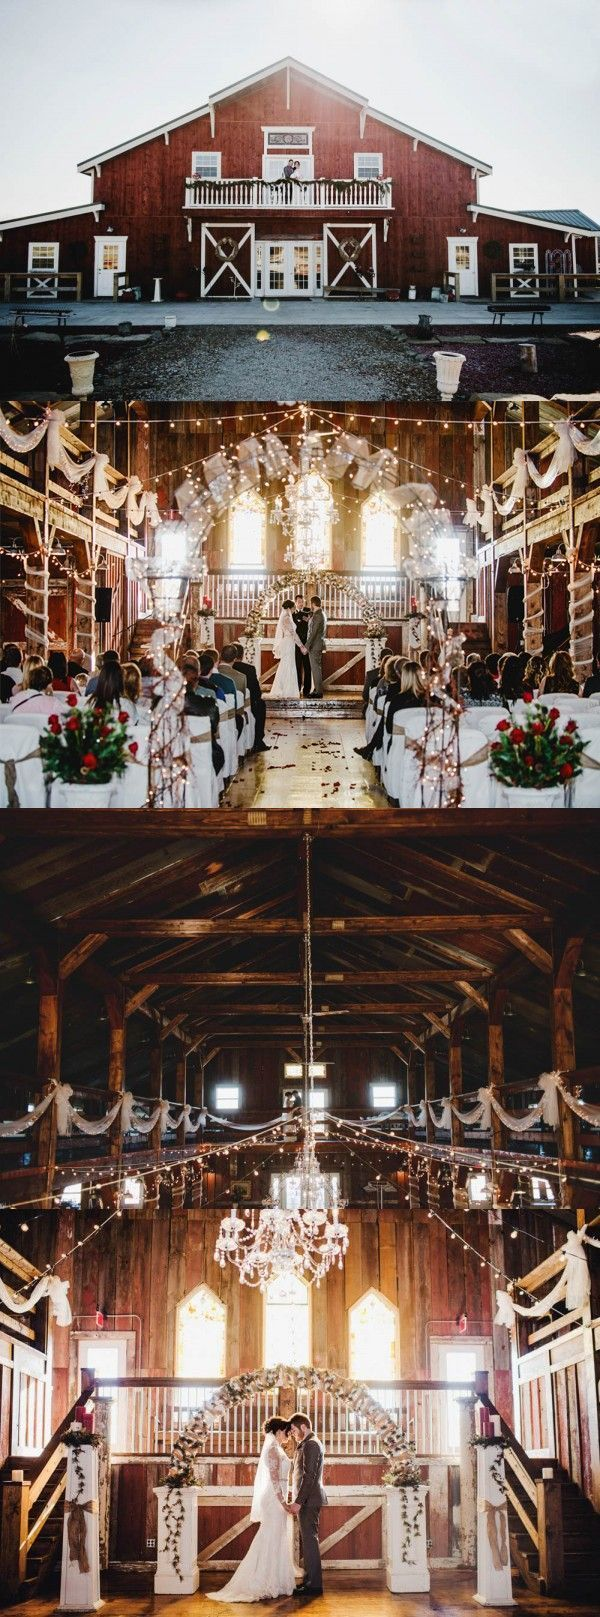 11 of The Most Beautiful Barn Venues For Getting Hitched | Junebug Weddings